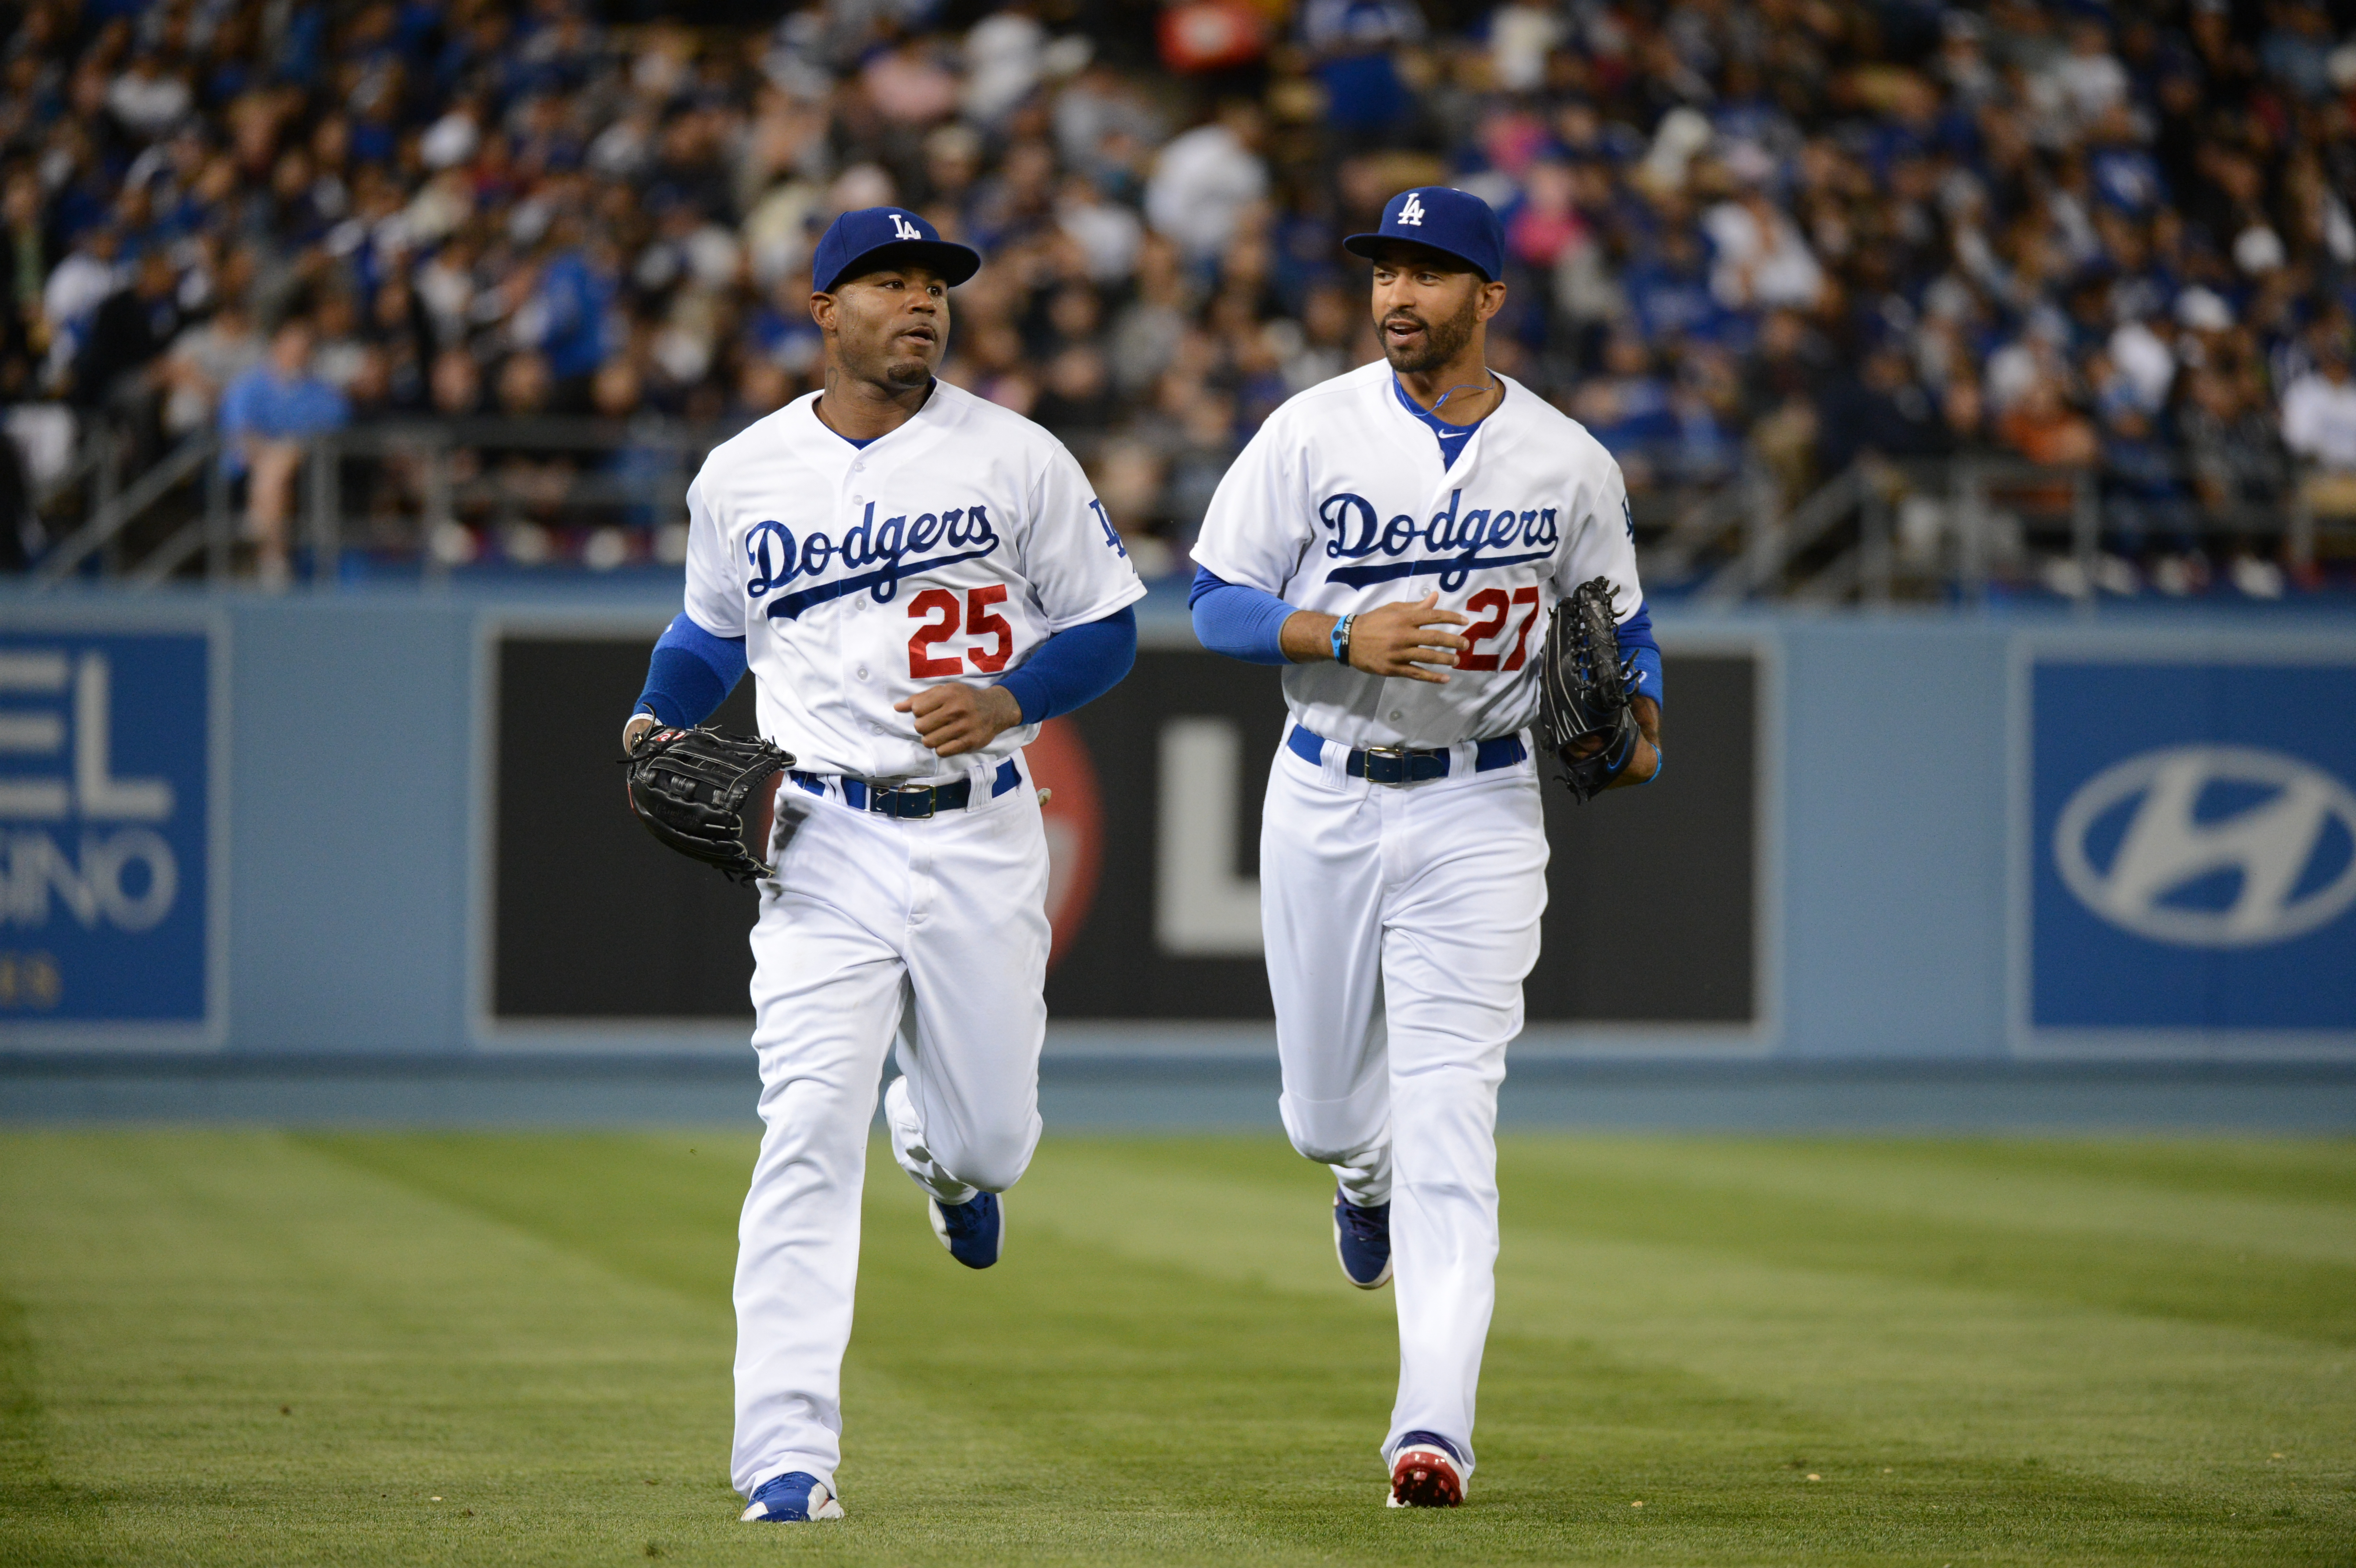 Who's poised to climb the Dodgers' all-time lists ...